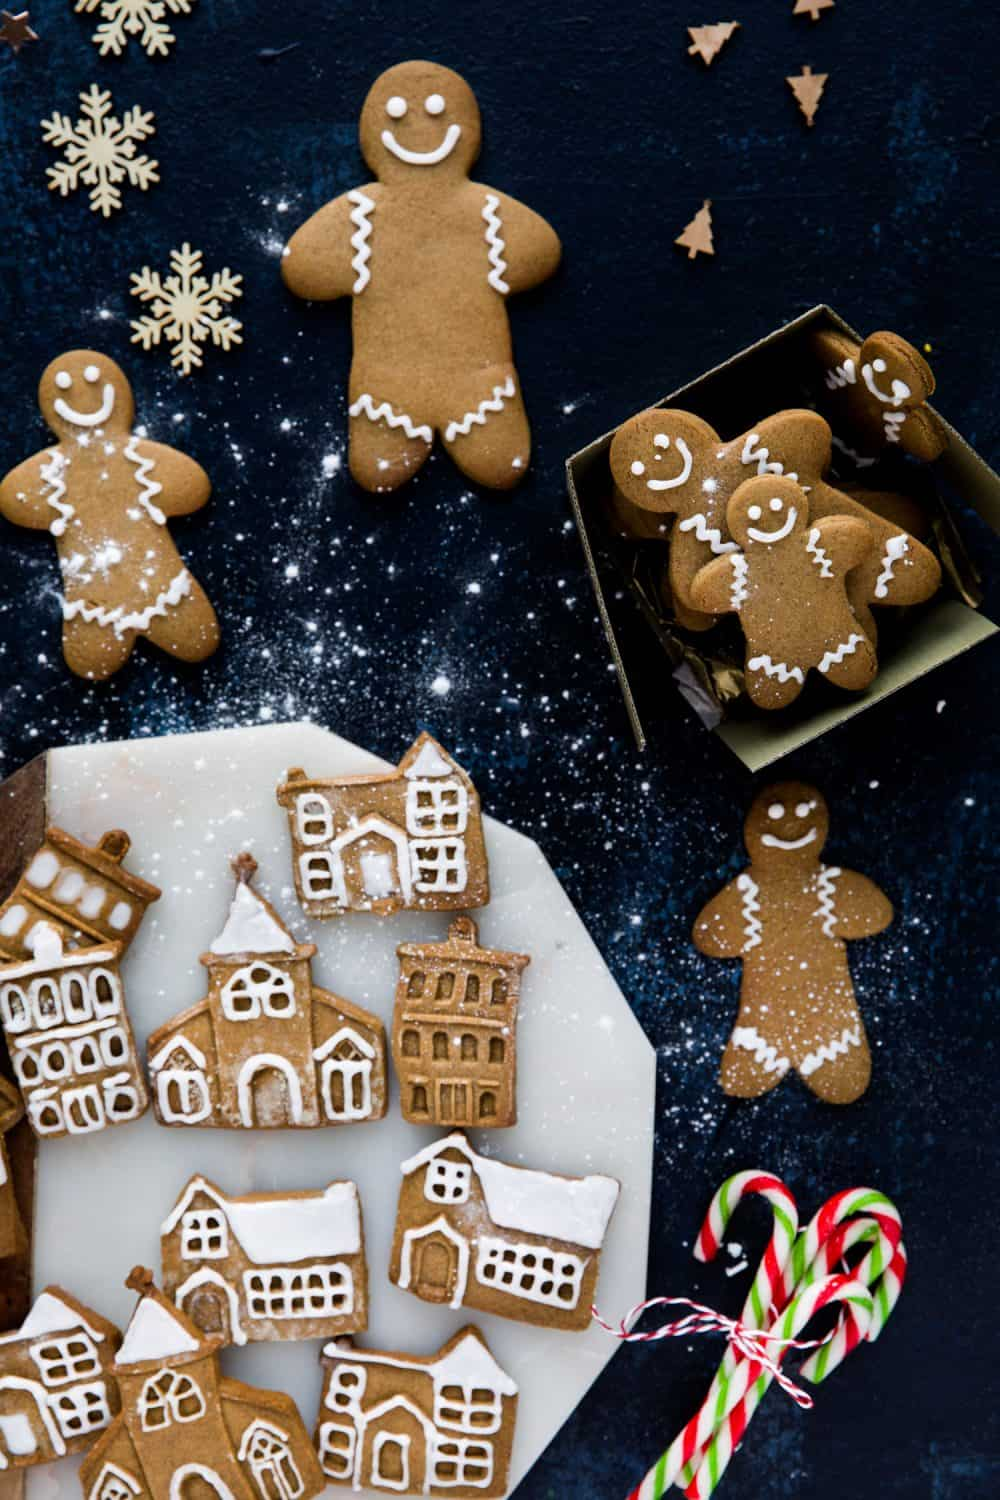 A selection of gingerbread houses, churches and gingerbread men laying on a dark blue background and sprinkled with icing sugar.